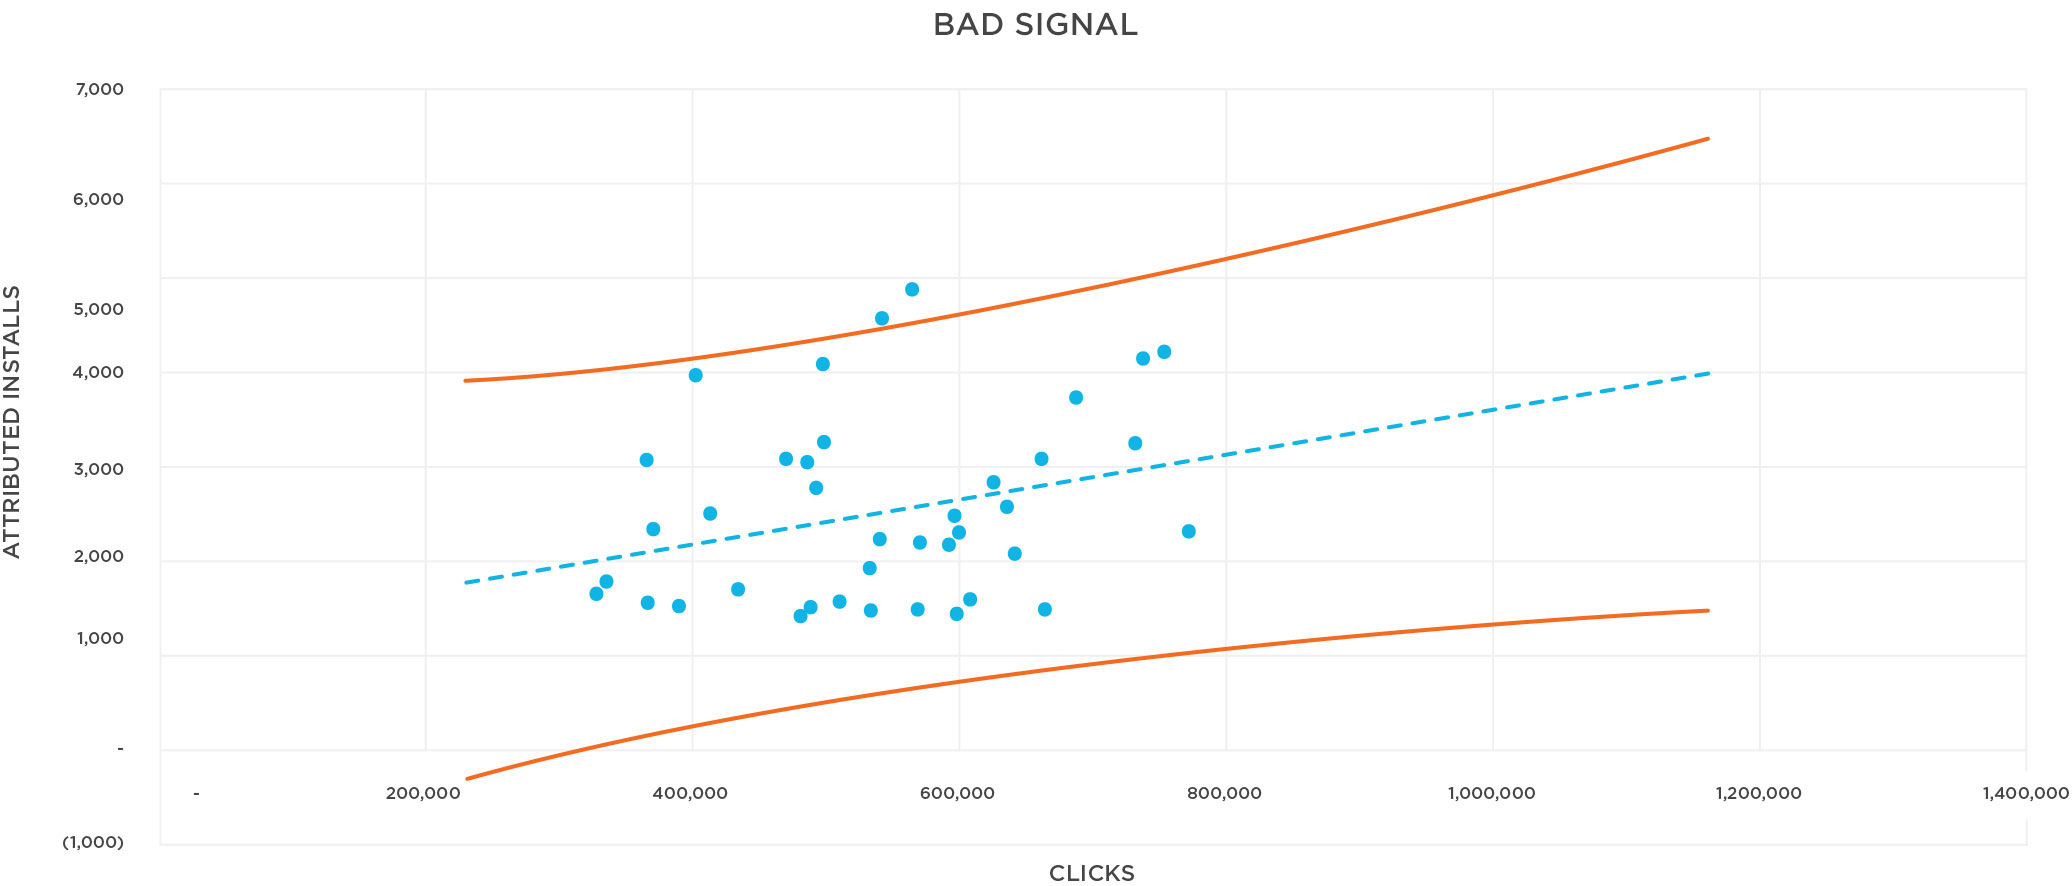 Install Correlation with bad signals graph